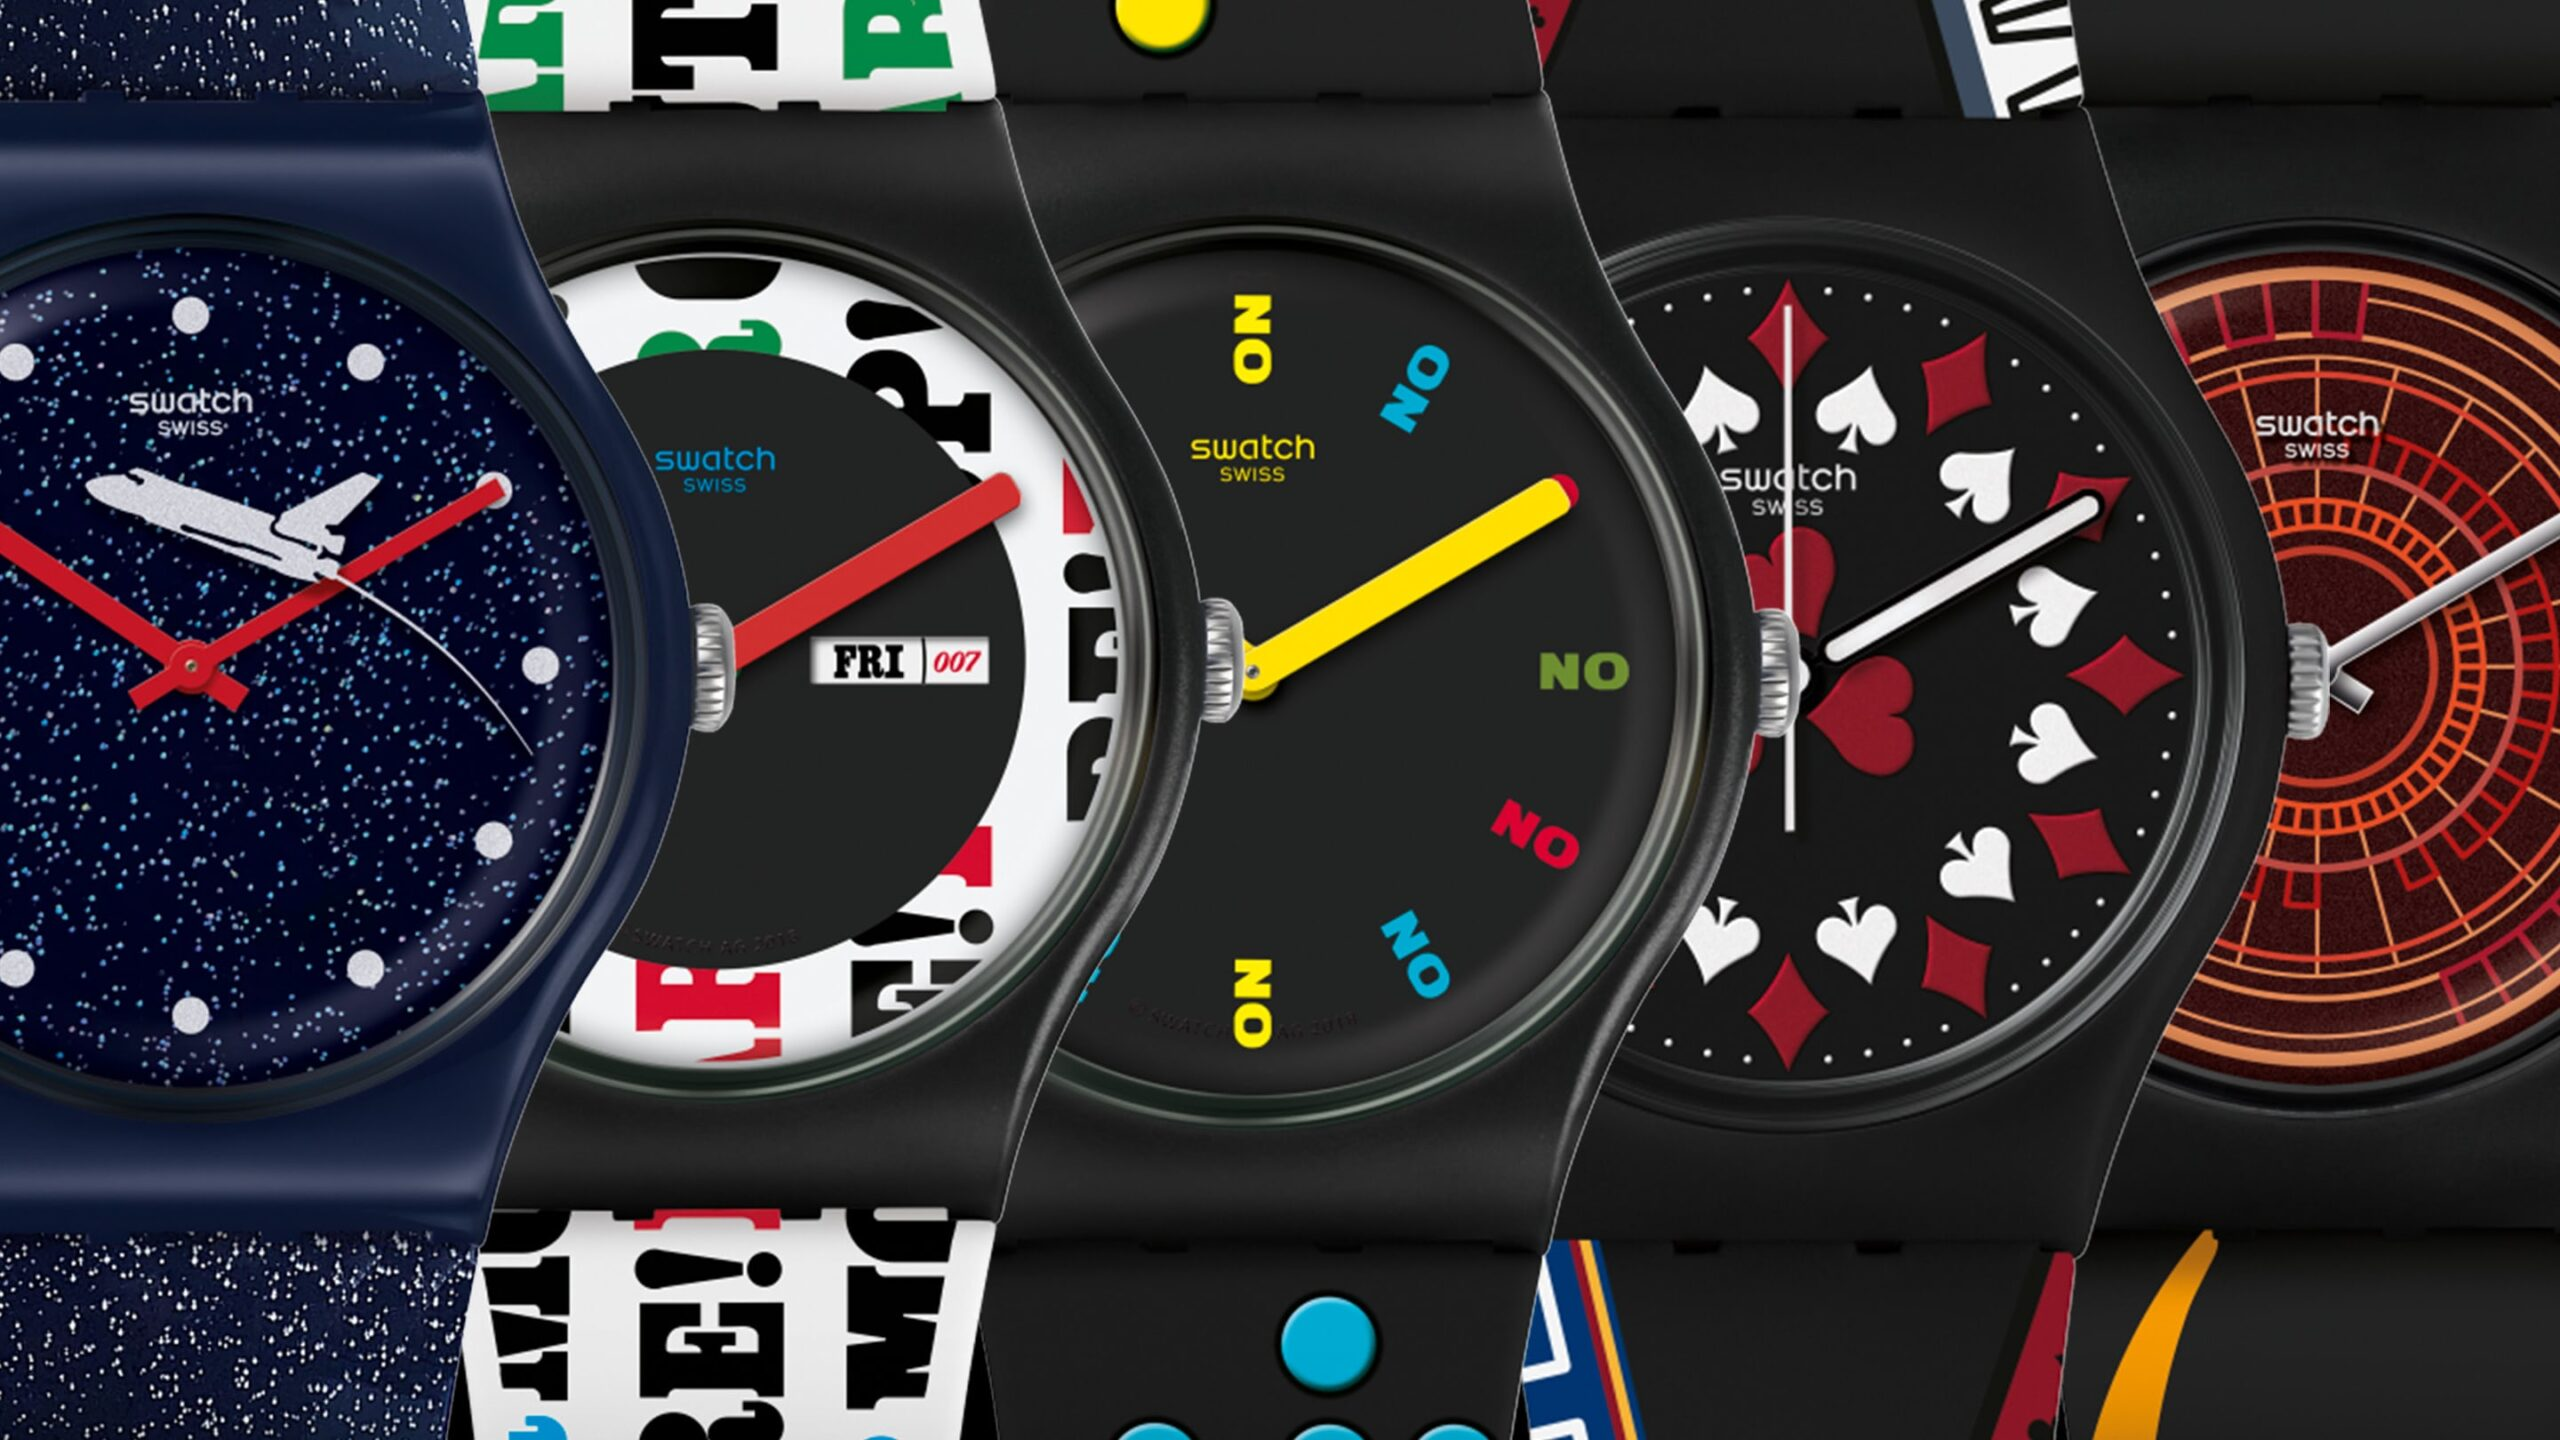 Swatch x 007 - James Bond Watch-2020